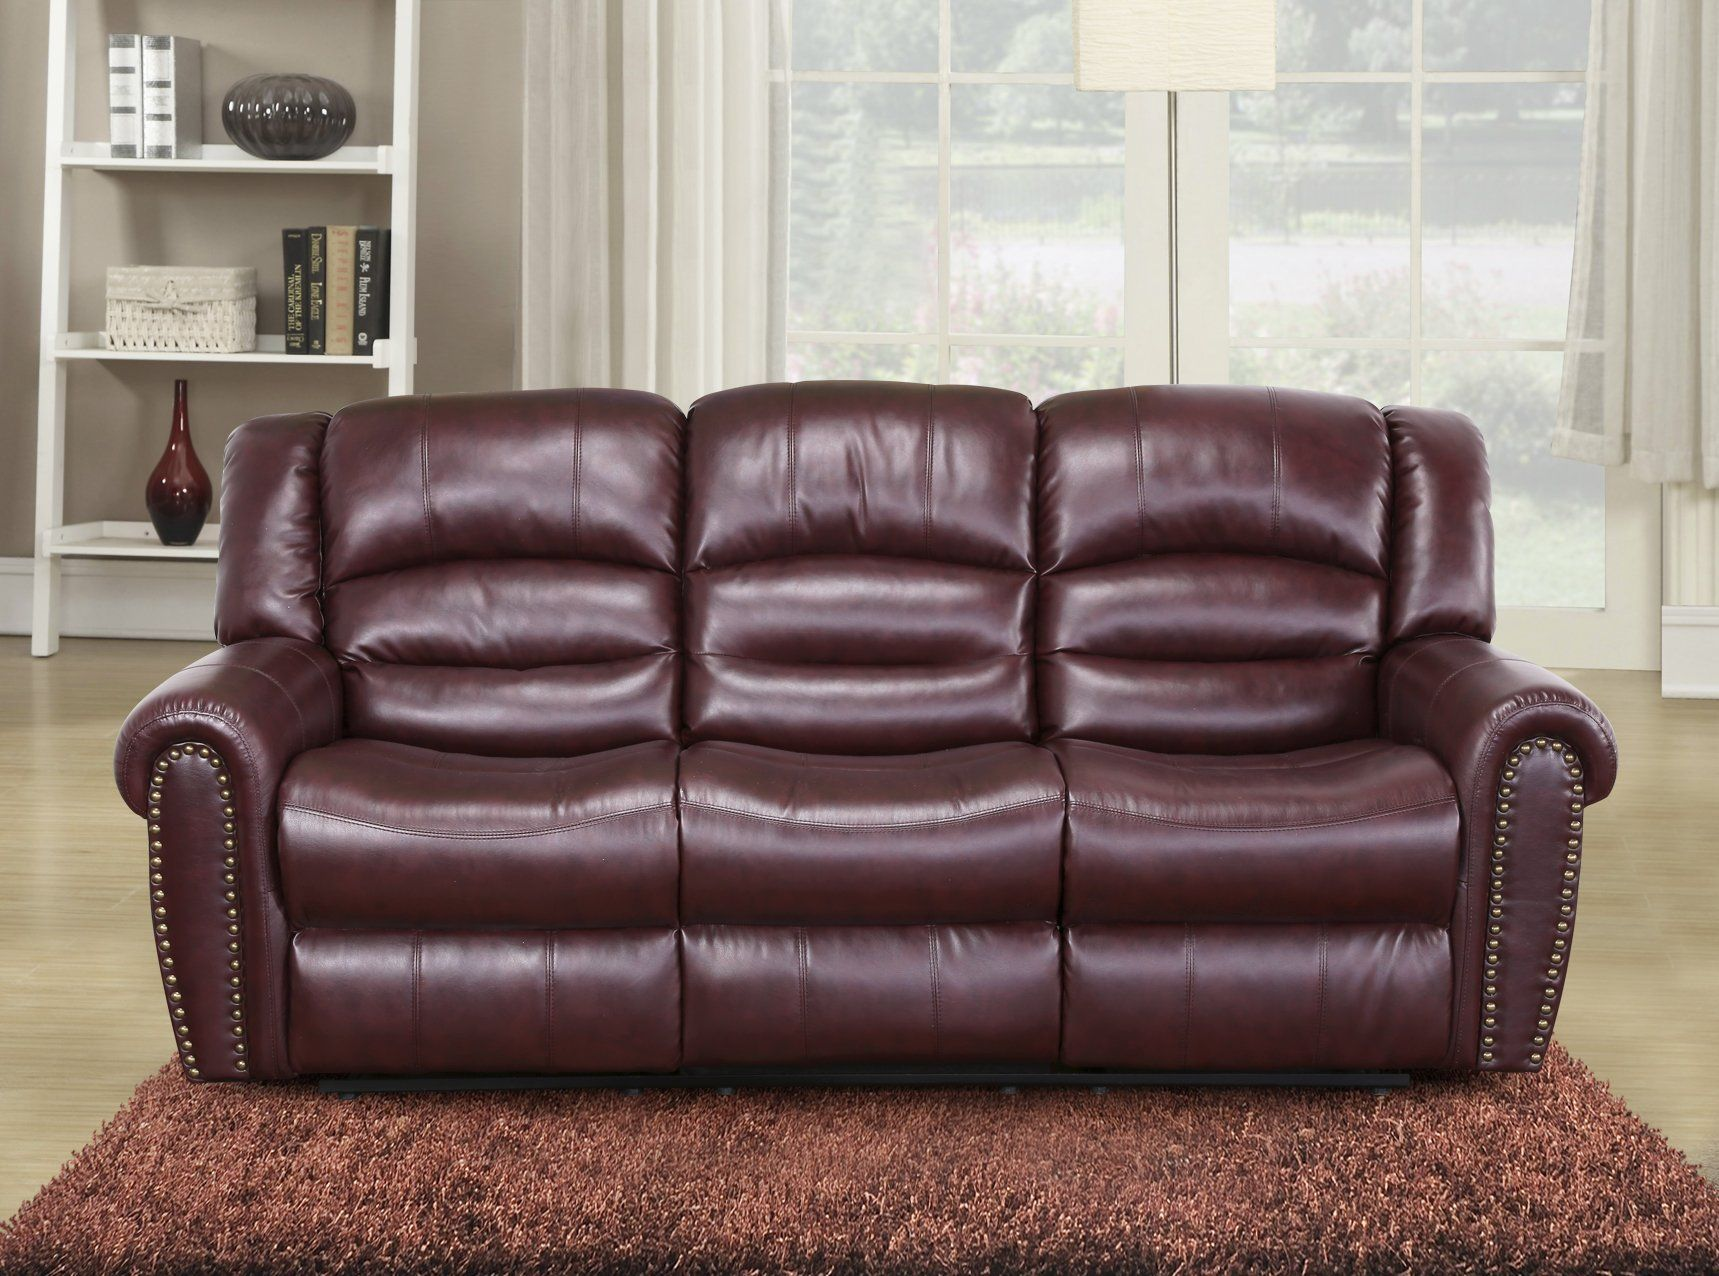 Meridian Furniture Nailhead Reclining Sofa, Burgundy. Genuine Top Quality  Bonded Leather. Dual Reclining